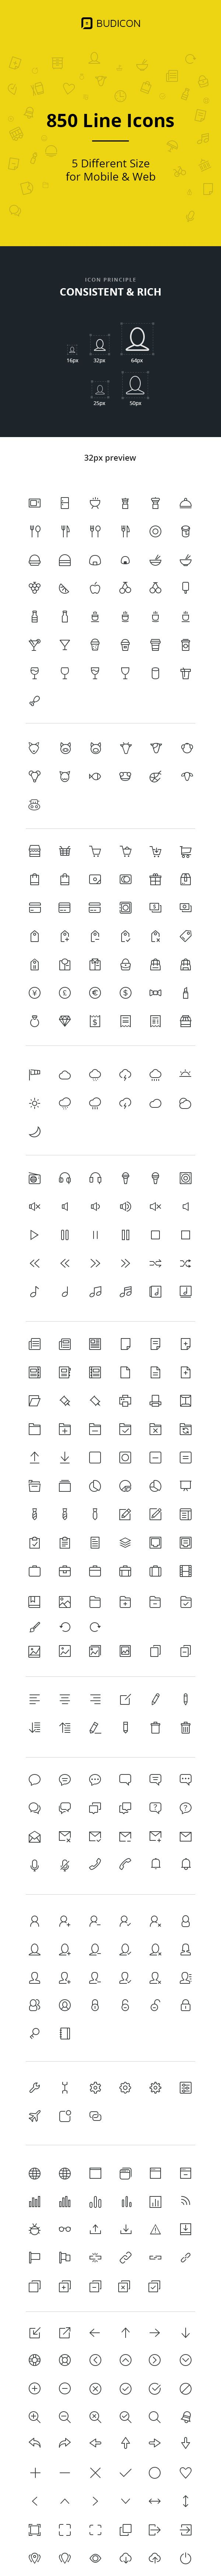 Budicon - 850 Scalable Vector Line Icons on Behance